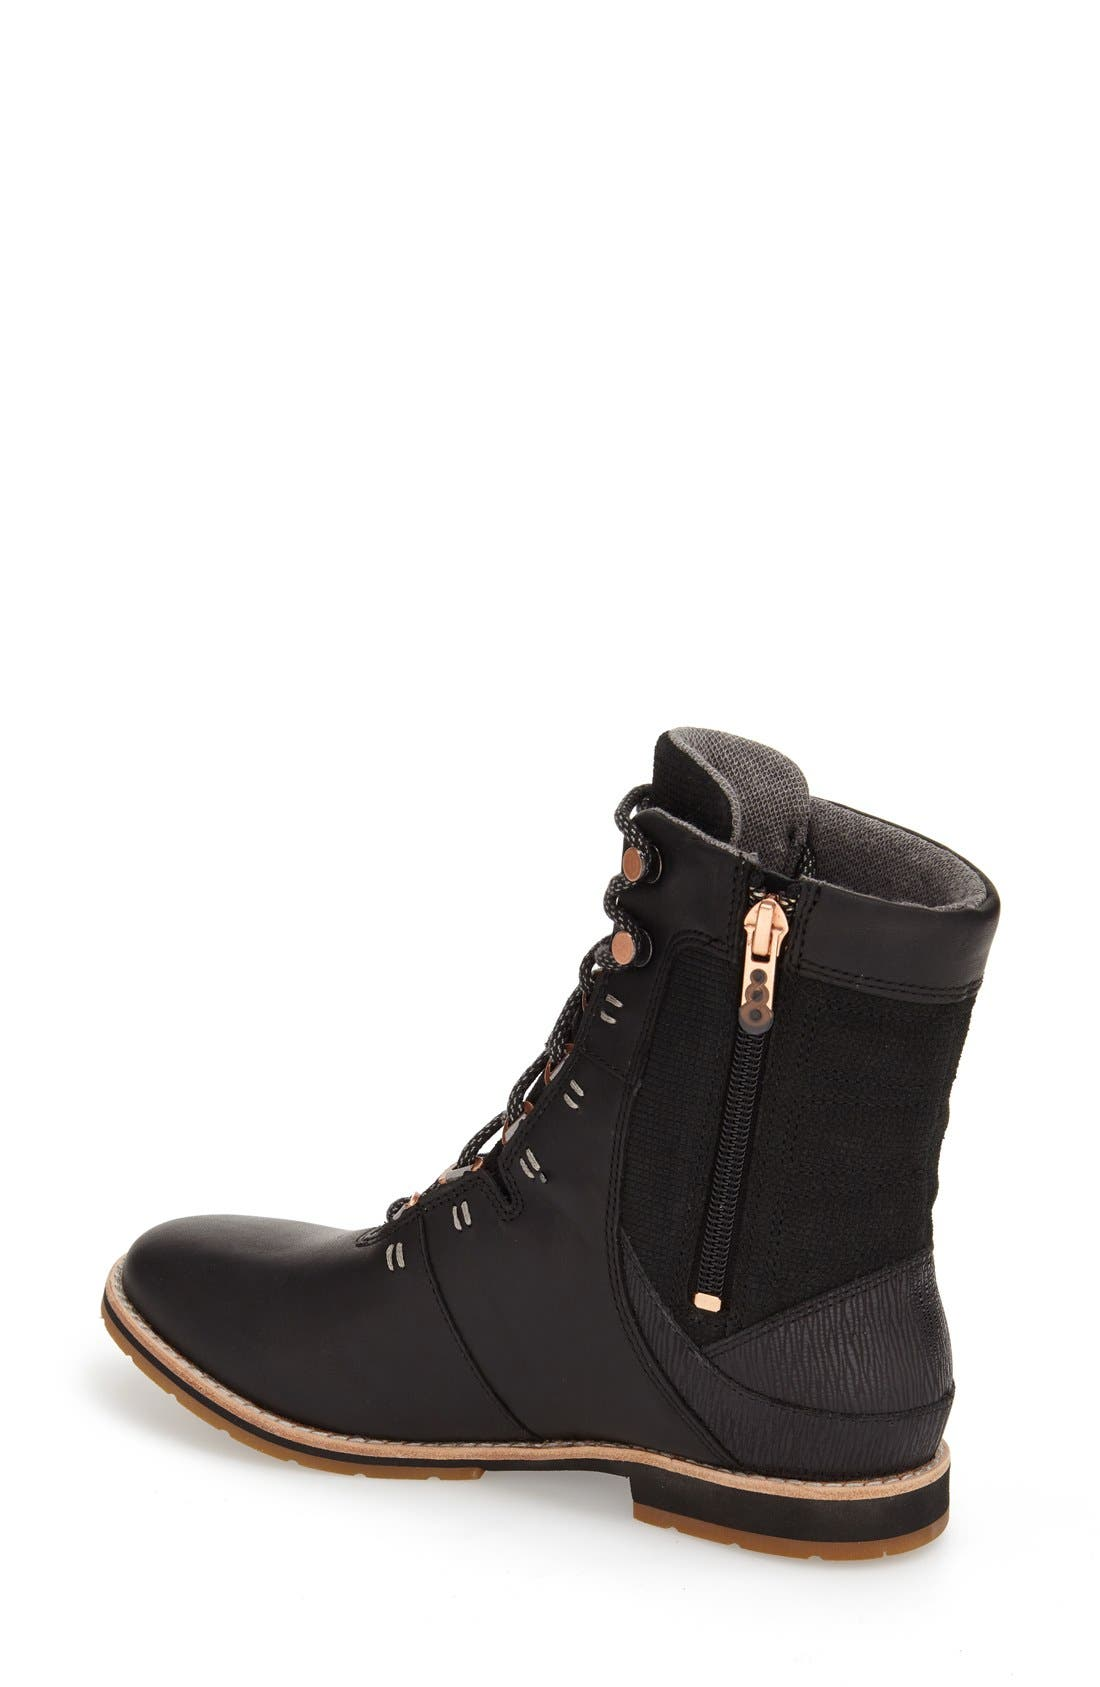 Alternate Image 2  - Ahnu 'Chenery' Water Resistant Boot (Women)